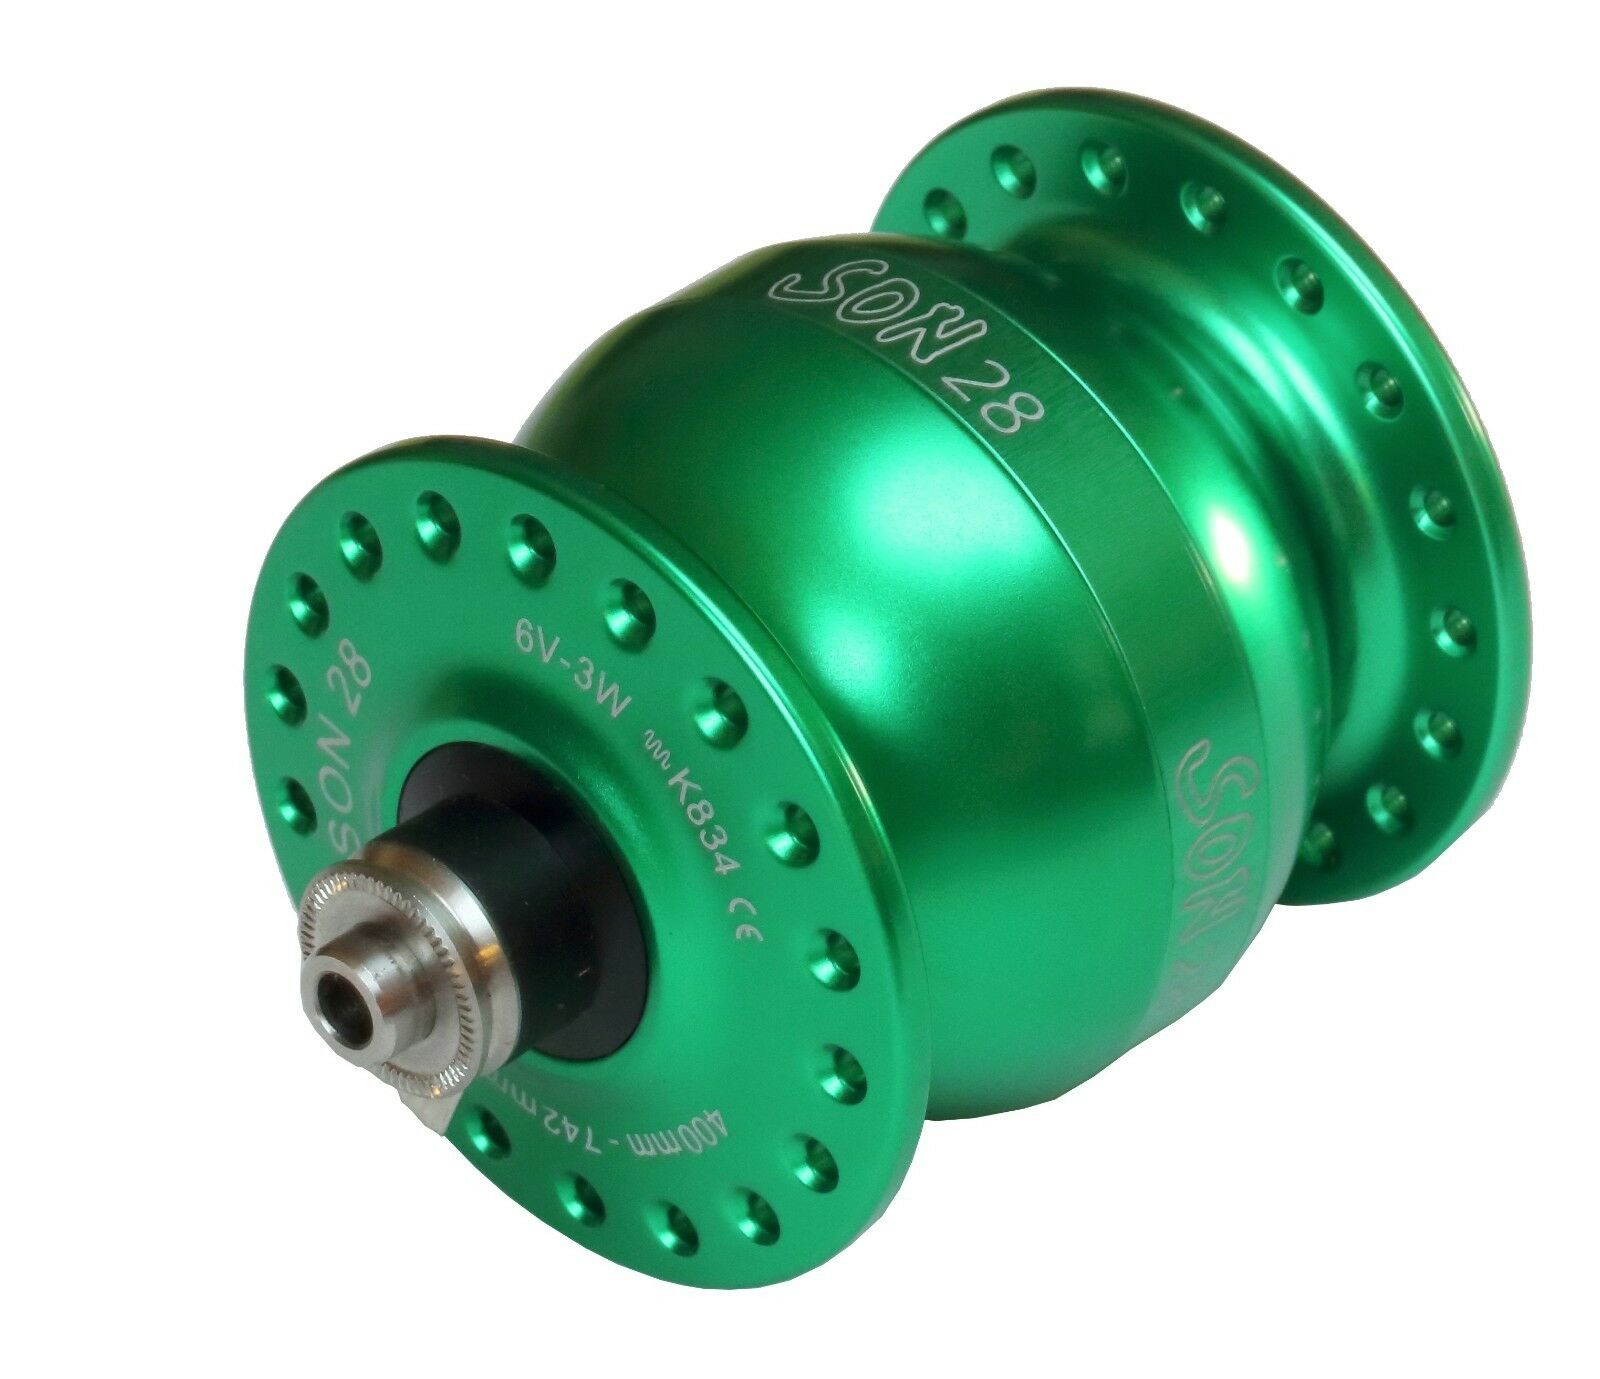 Hub Dynamo Son 28 New 36hole verde for VBrake 36Hole